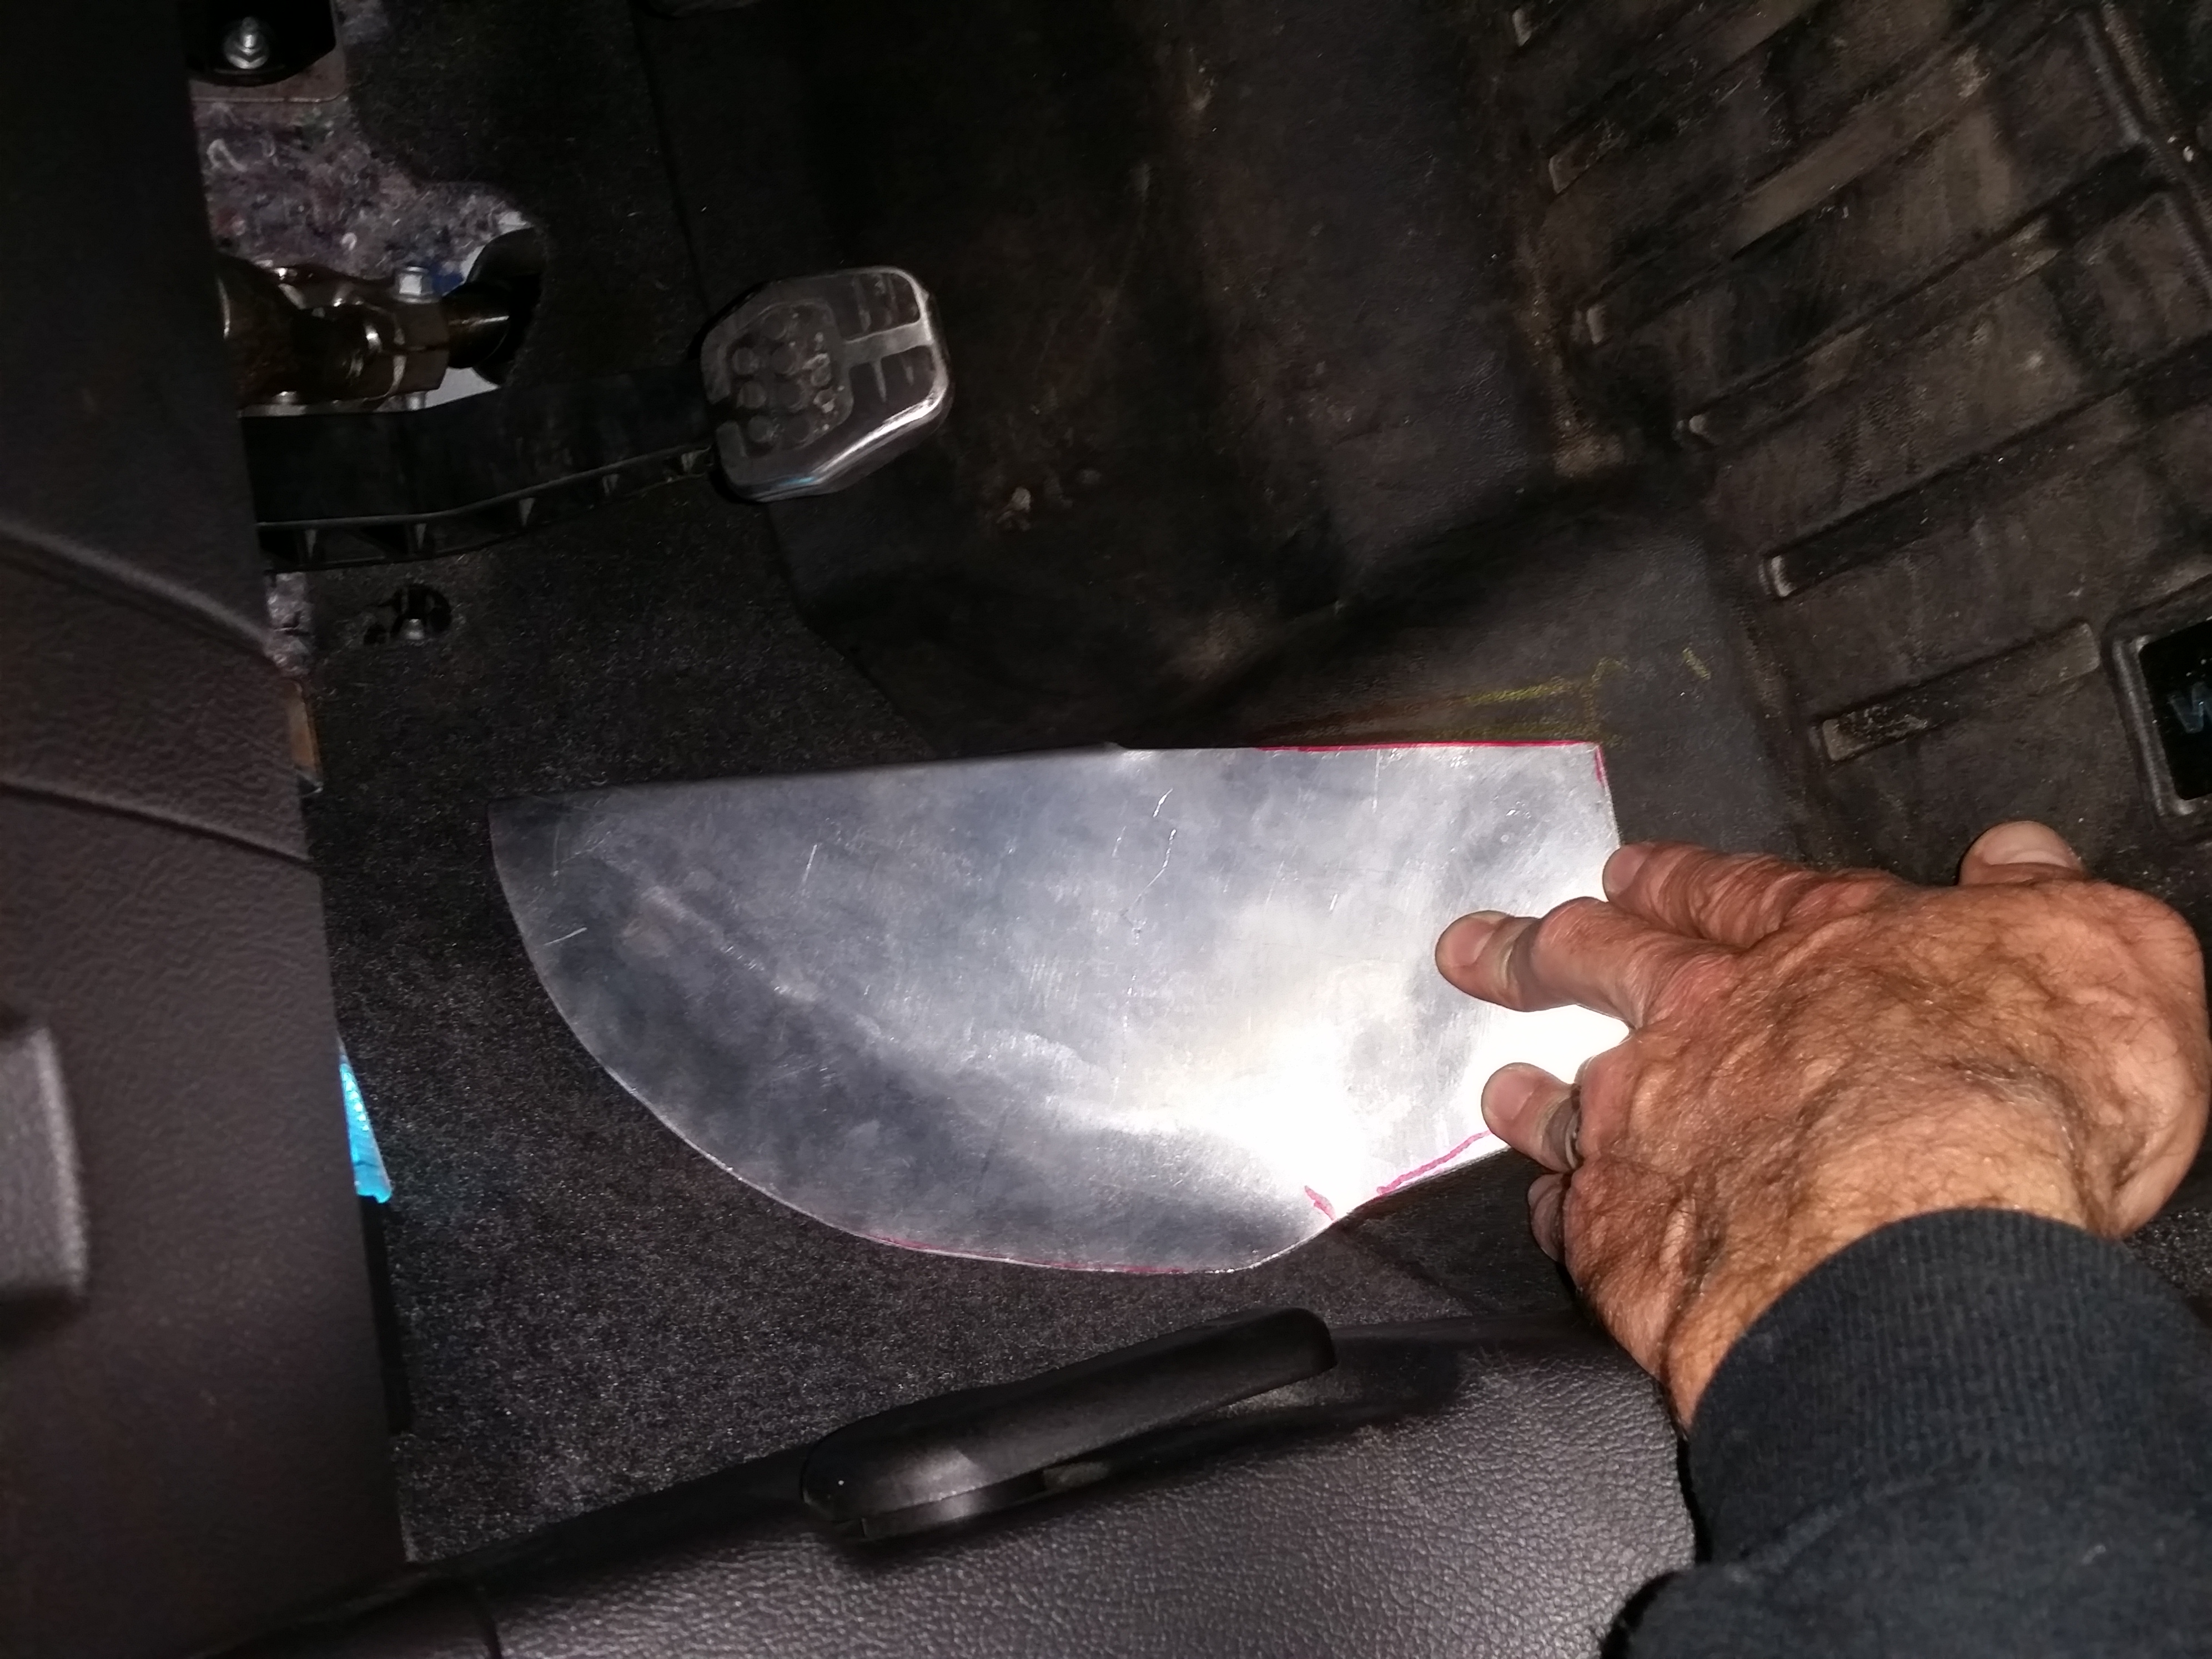 Weathertech floor mats rochester ny - Attached Images